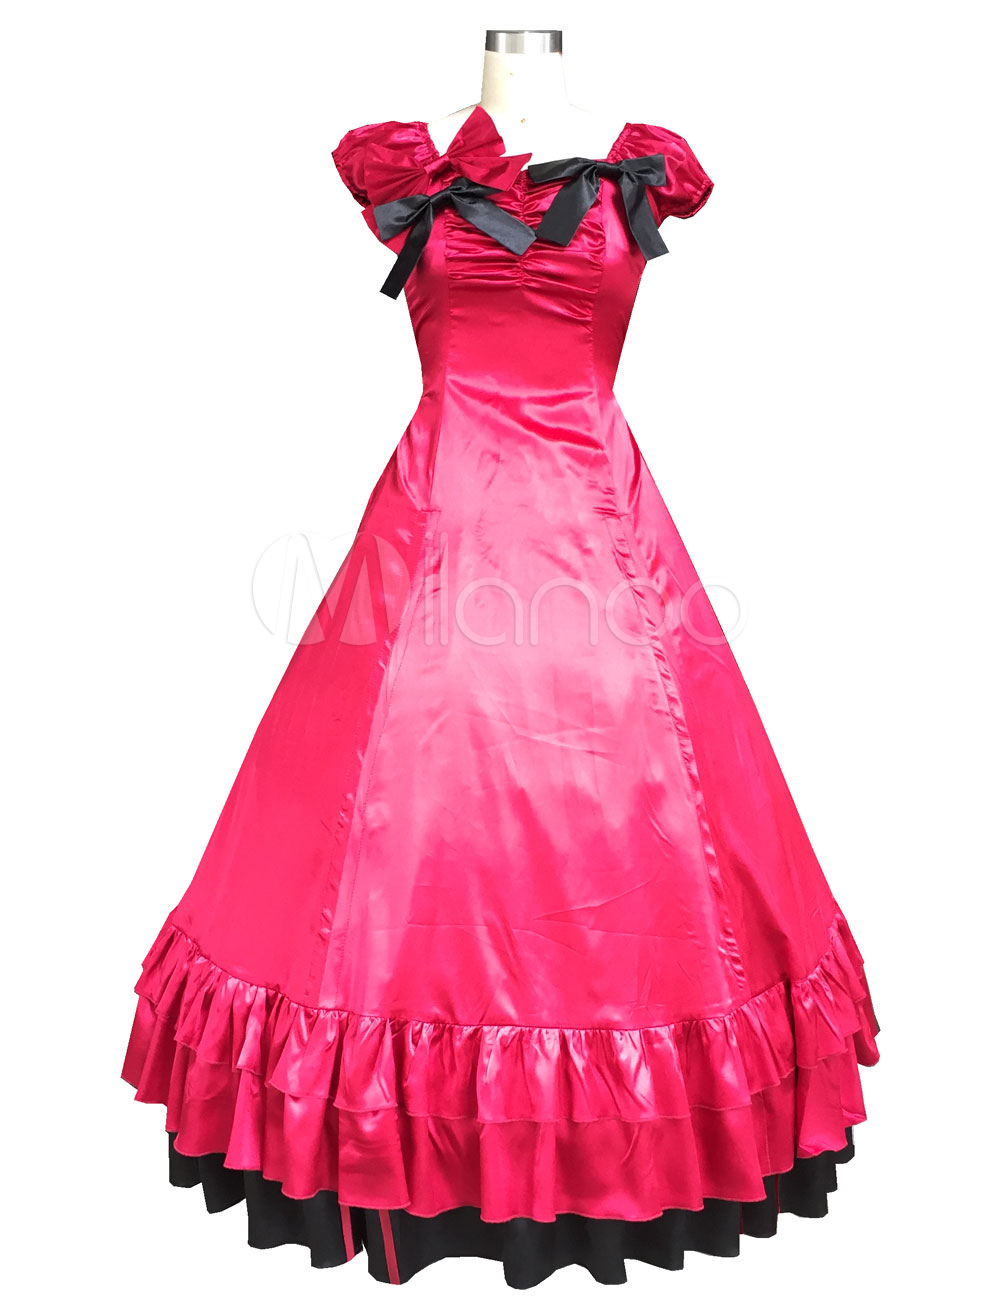 Buy Red Classic Vintage Gothic Lolita Dress Halloween Cosplay Costume Halloween for $111.99 in Milanoo store